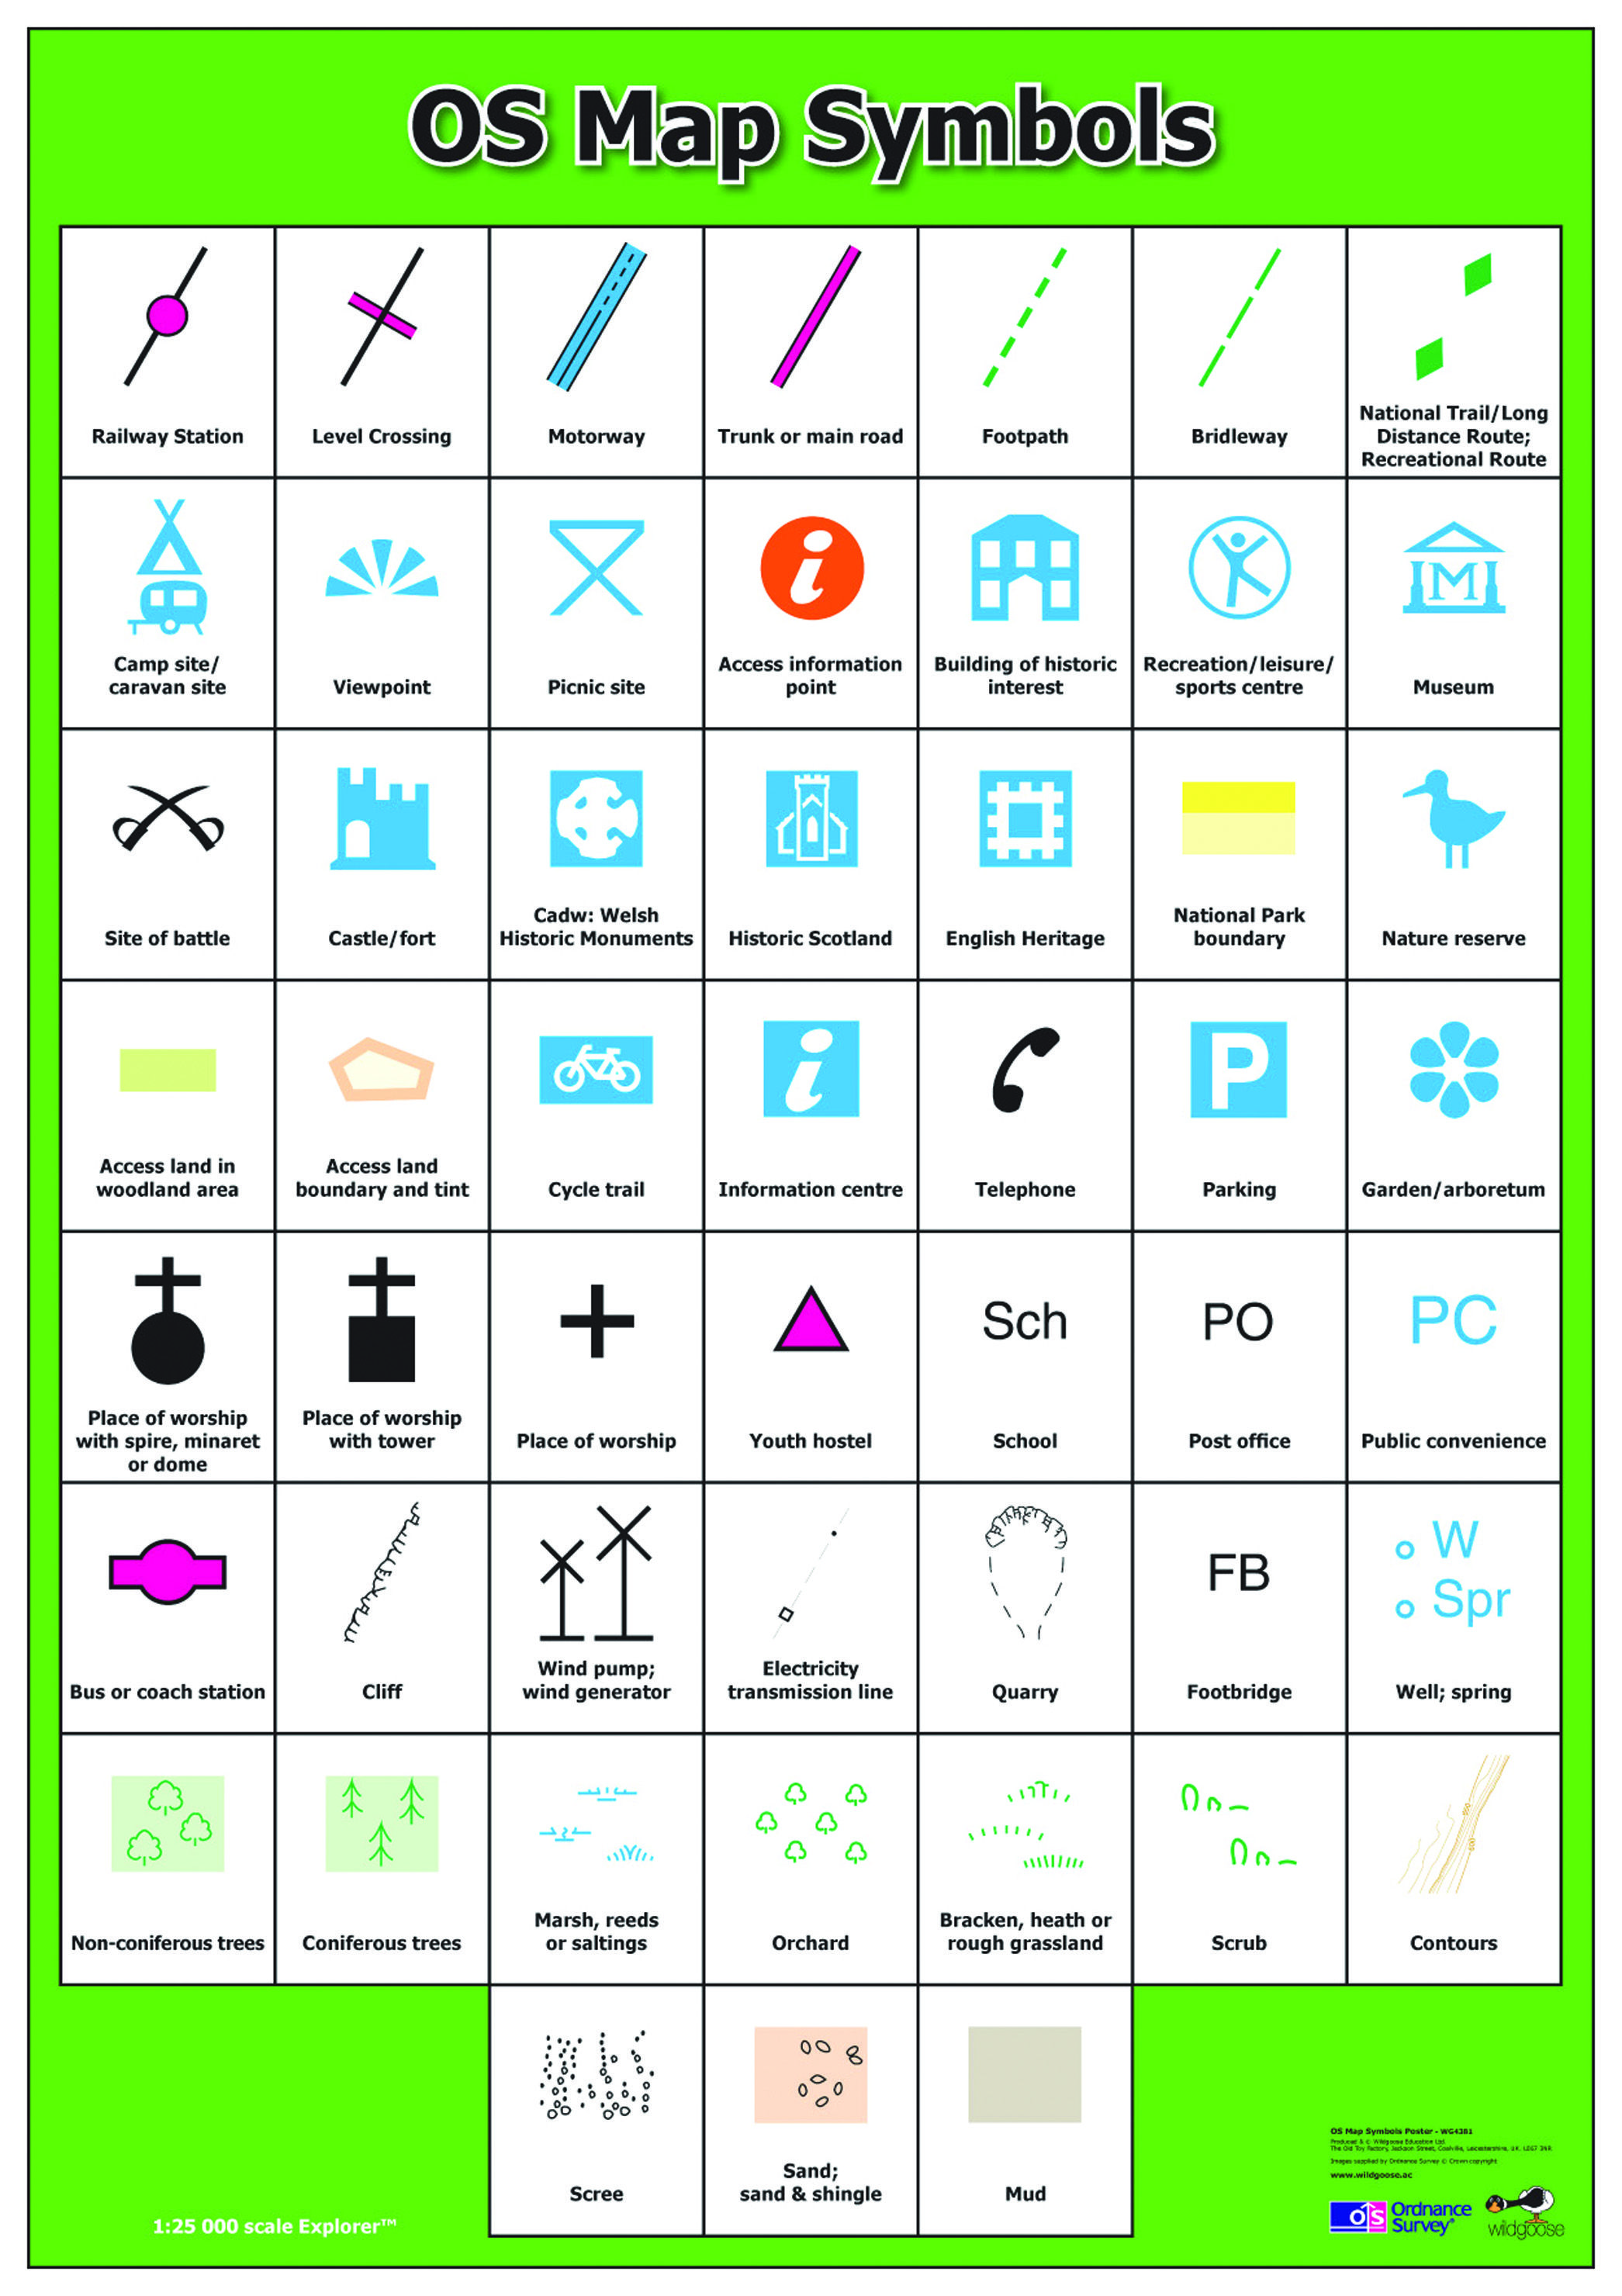 ordnance survey legend symbols - Google Search | Teacher's ... on push pins for maps, north arrows for maps, legend for tables, compass rose for maps,